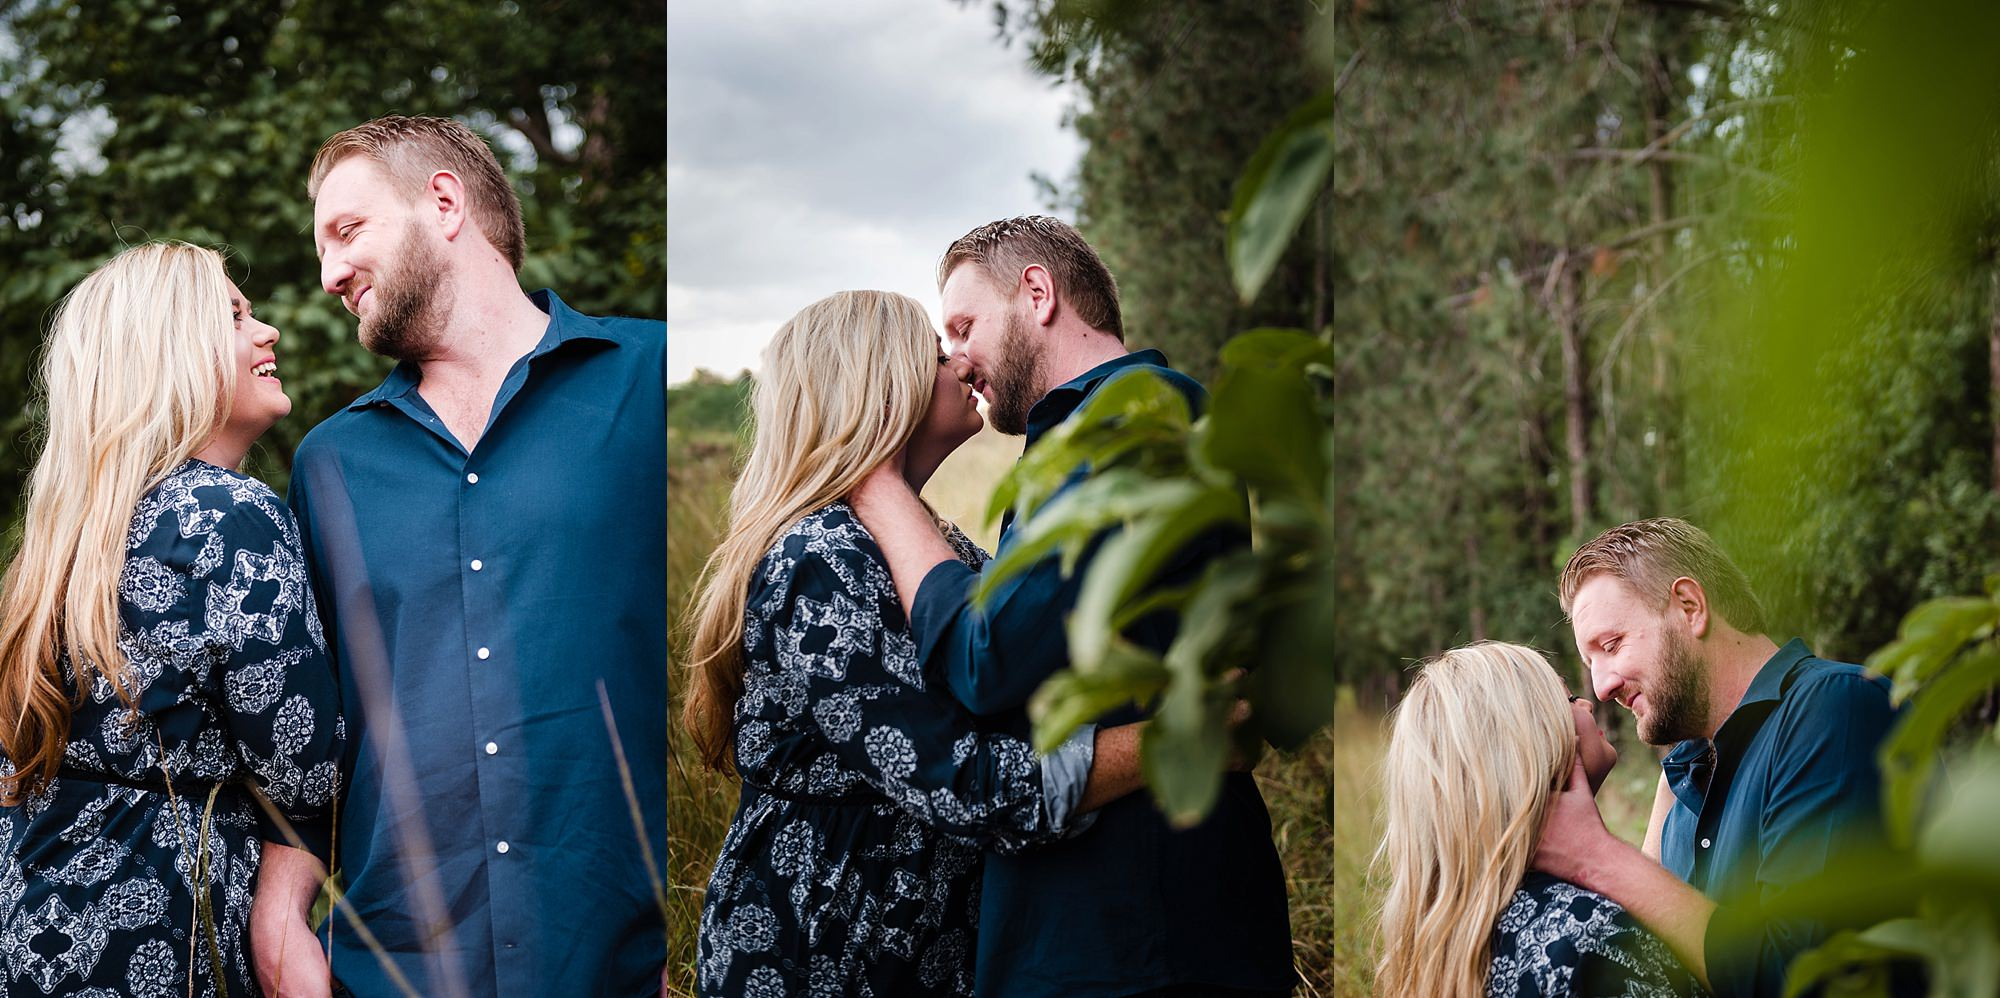 Wynandvandermerwe david irene engagement shoot nature gauteng6.jpg